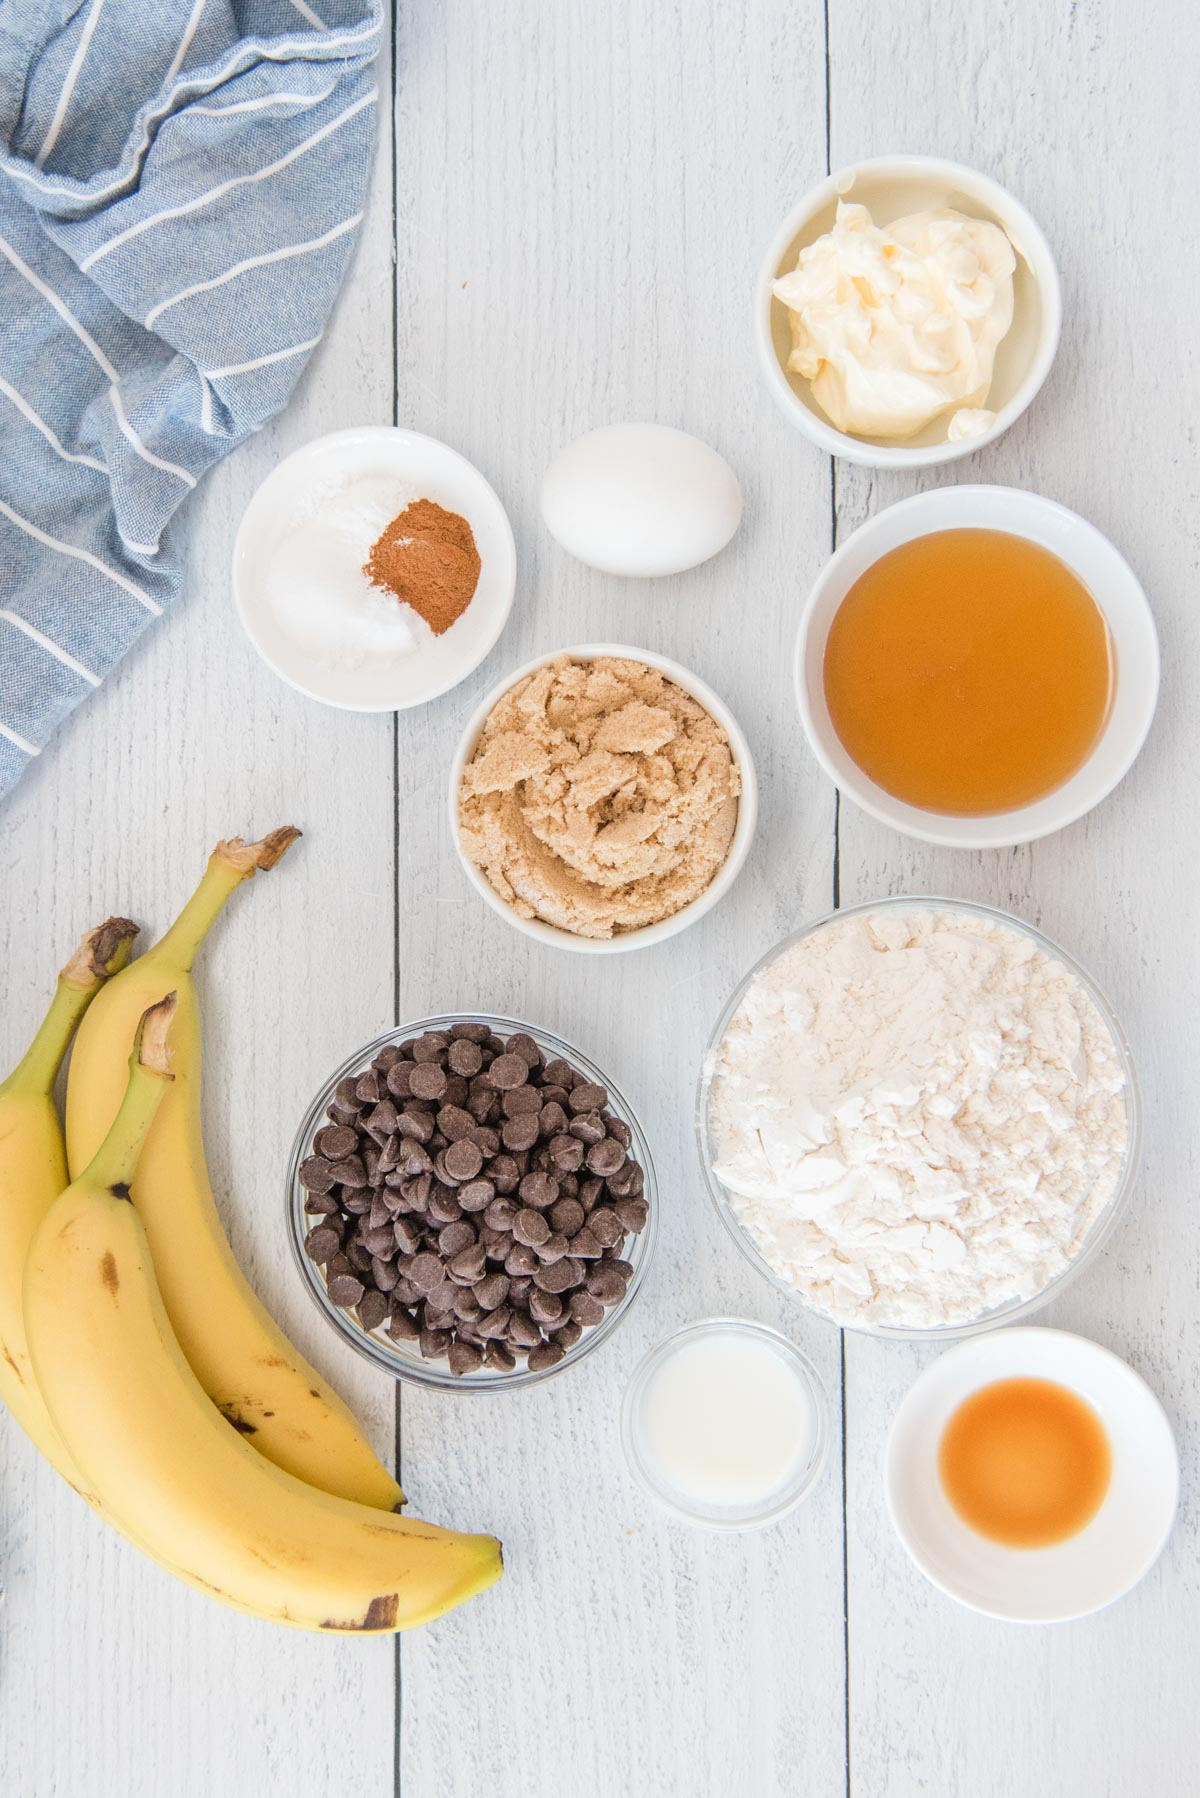 ingredients for chocolate cihp banana muffins